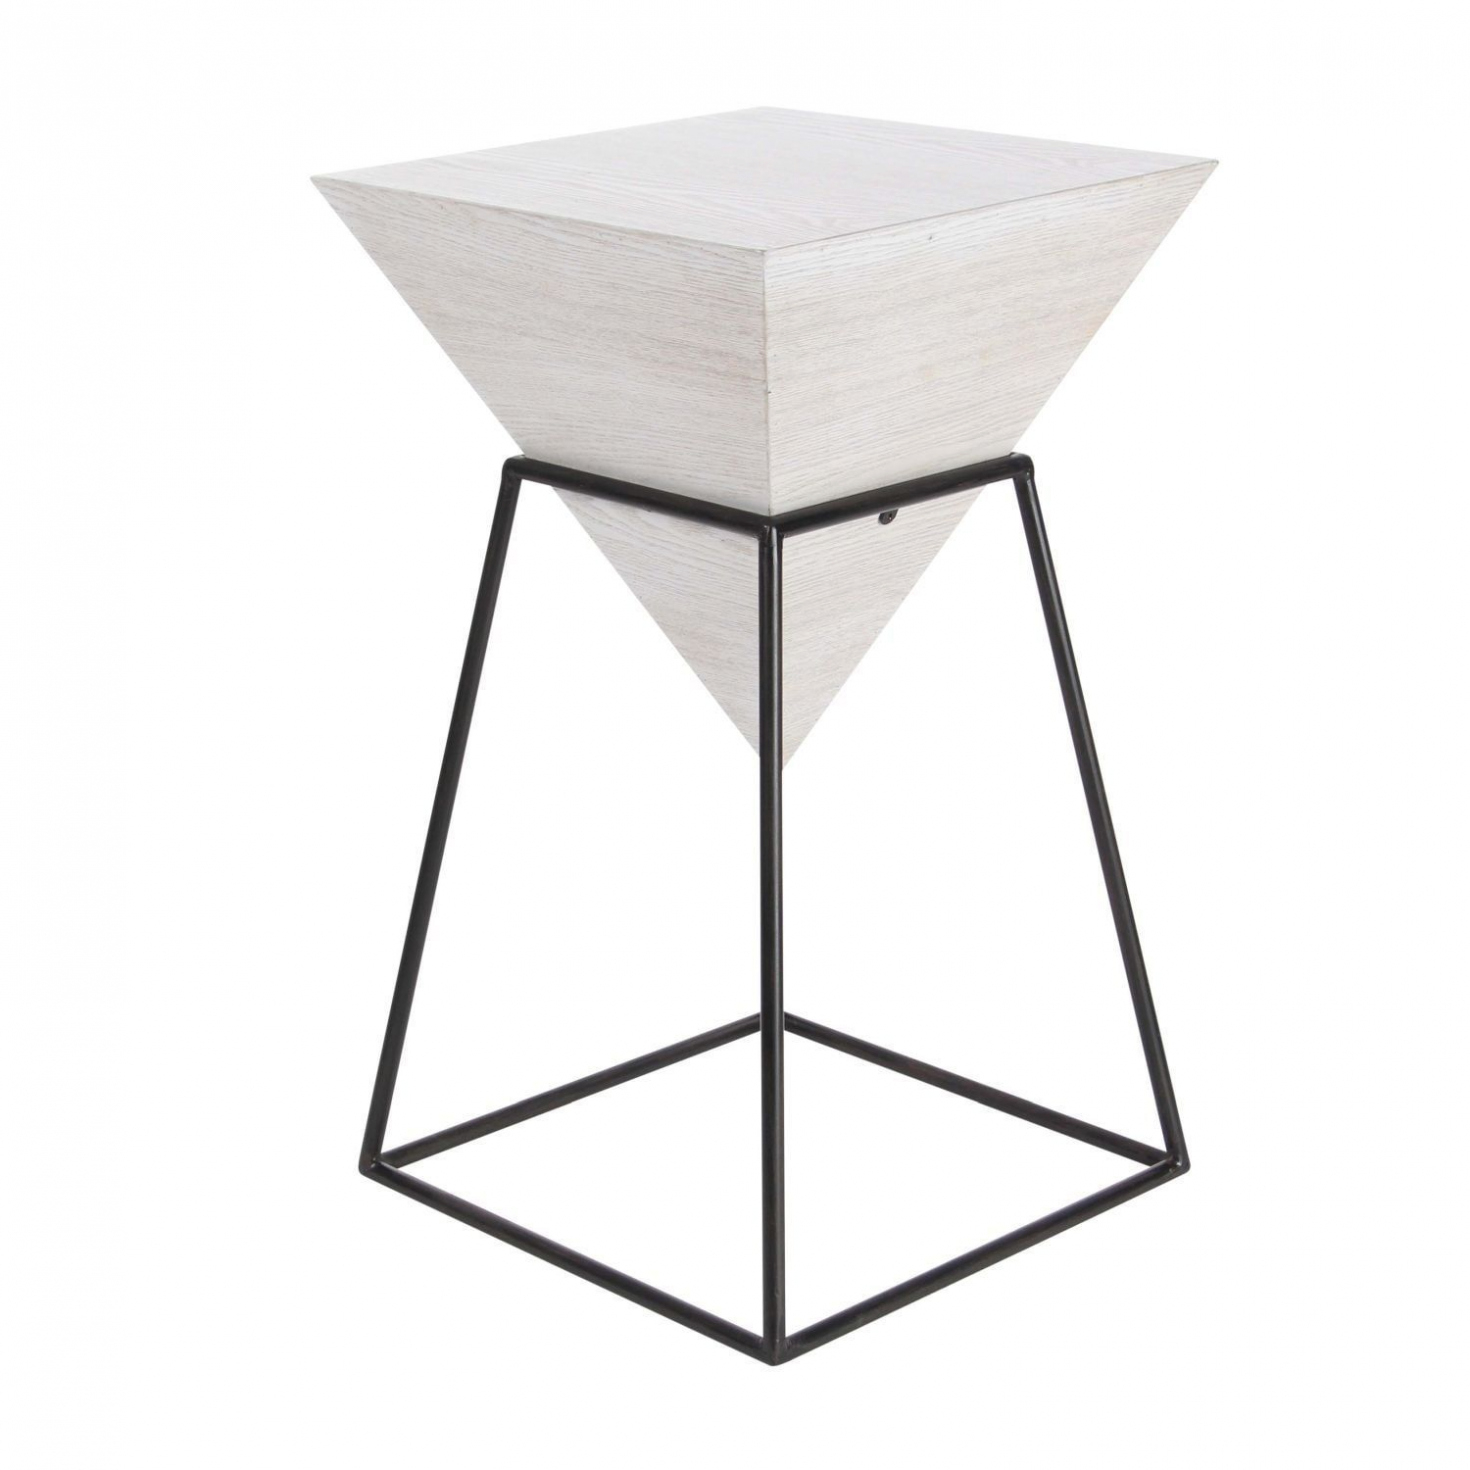 living studio wood metal grey square accent table inches wide intended for amazing end high your home concept keter ice bucket patio occasional tables center cloth antique